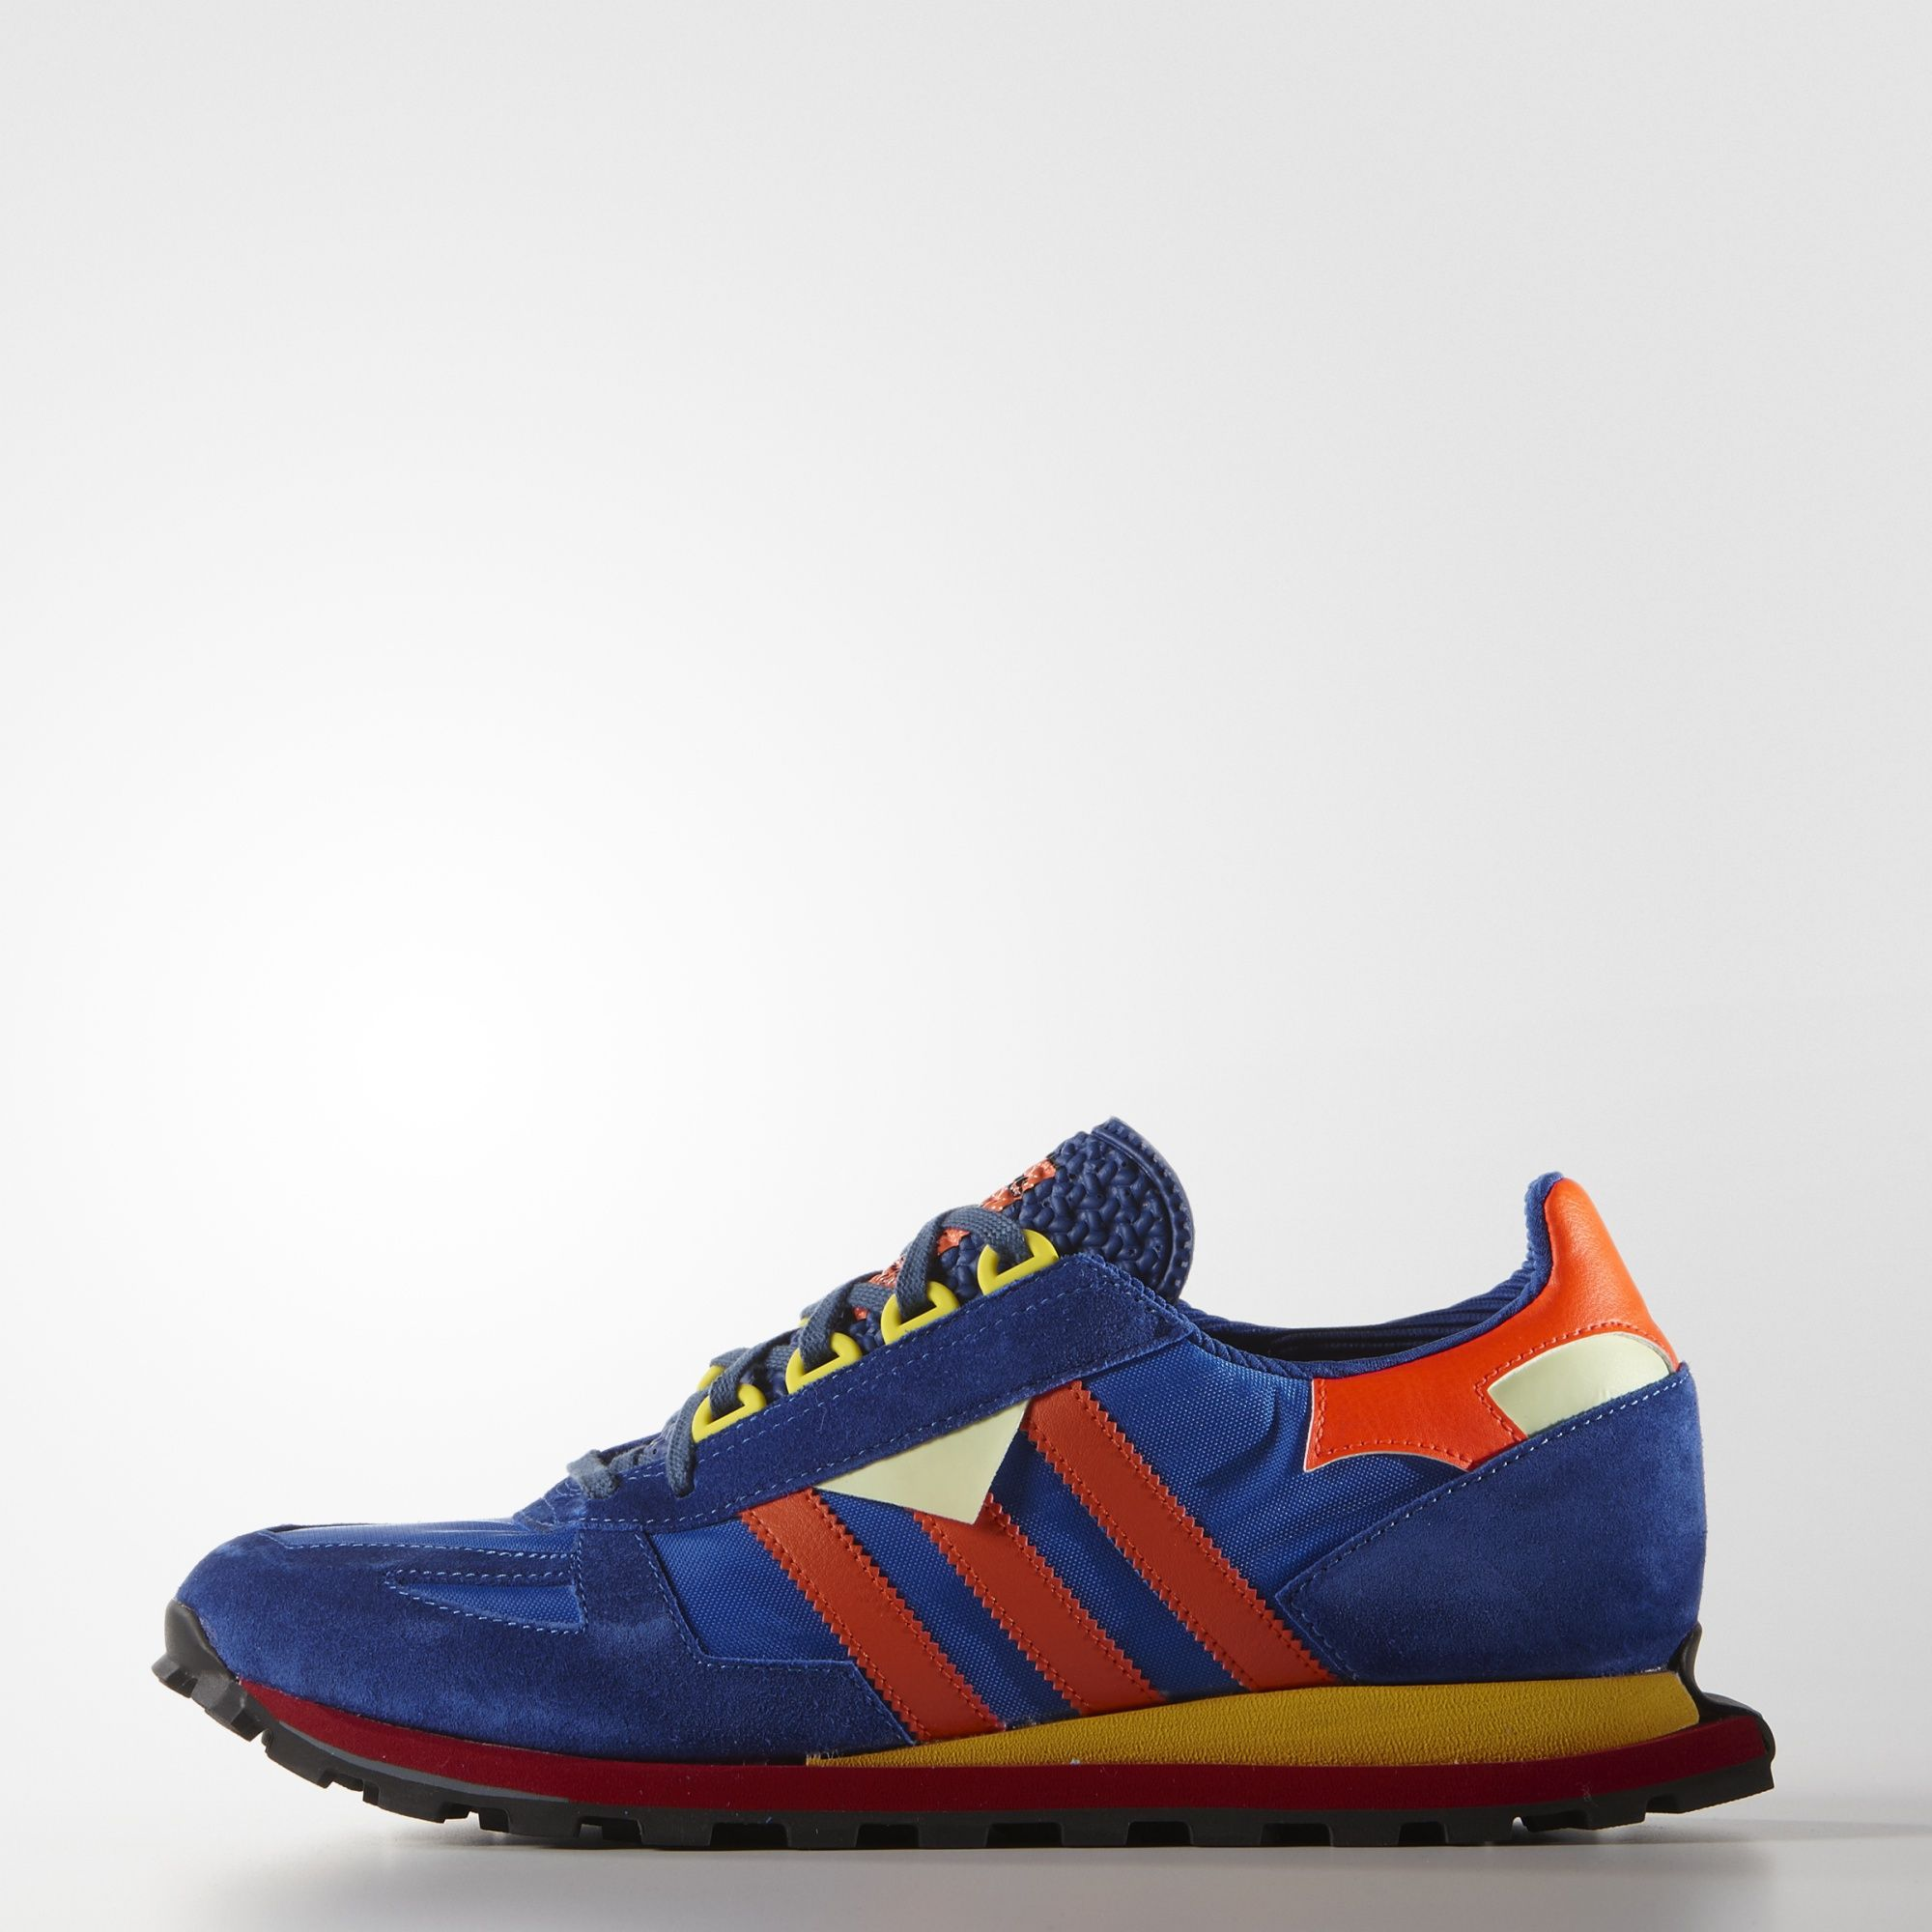 d0bf35554a7f7a Adidas racing 1.0 Prototype